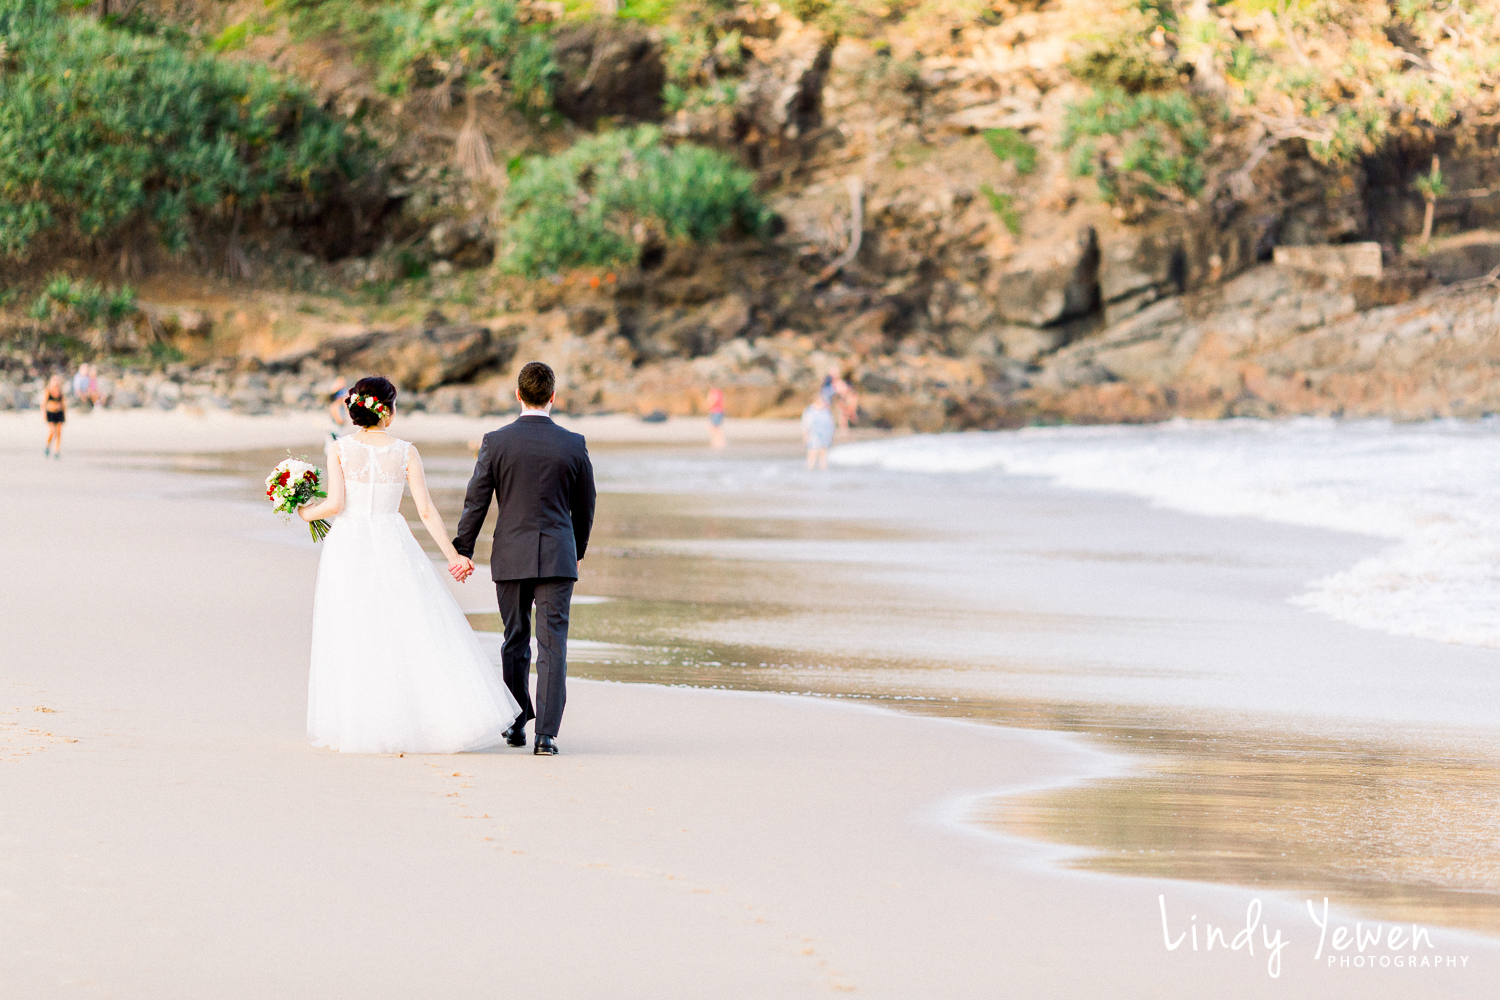 Sunshine-Beach-Weddings-Dimitrije-Maria 196.jpg